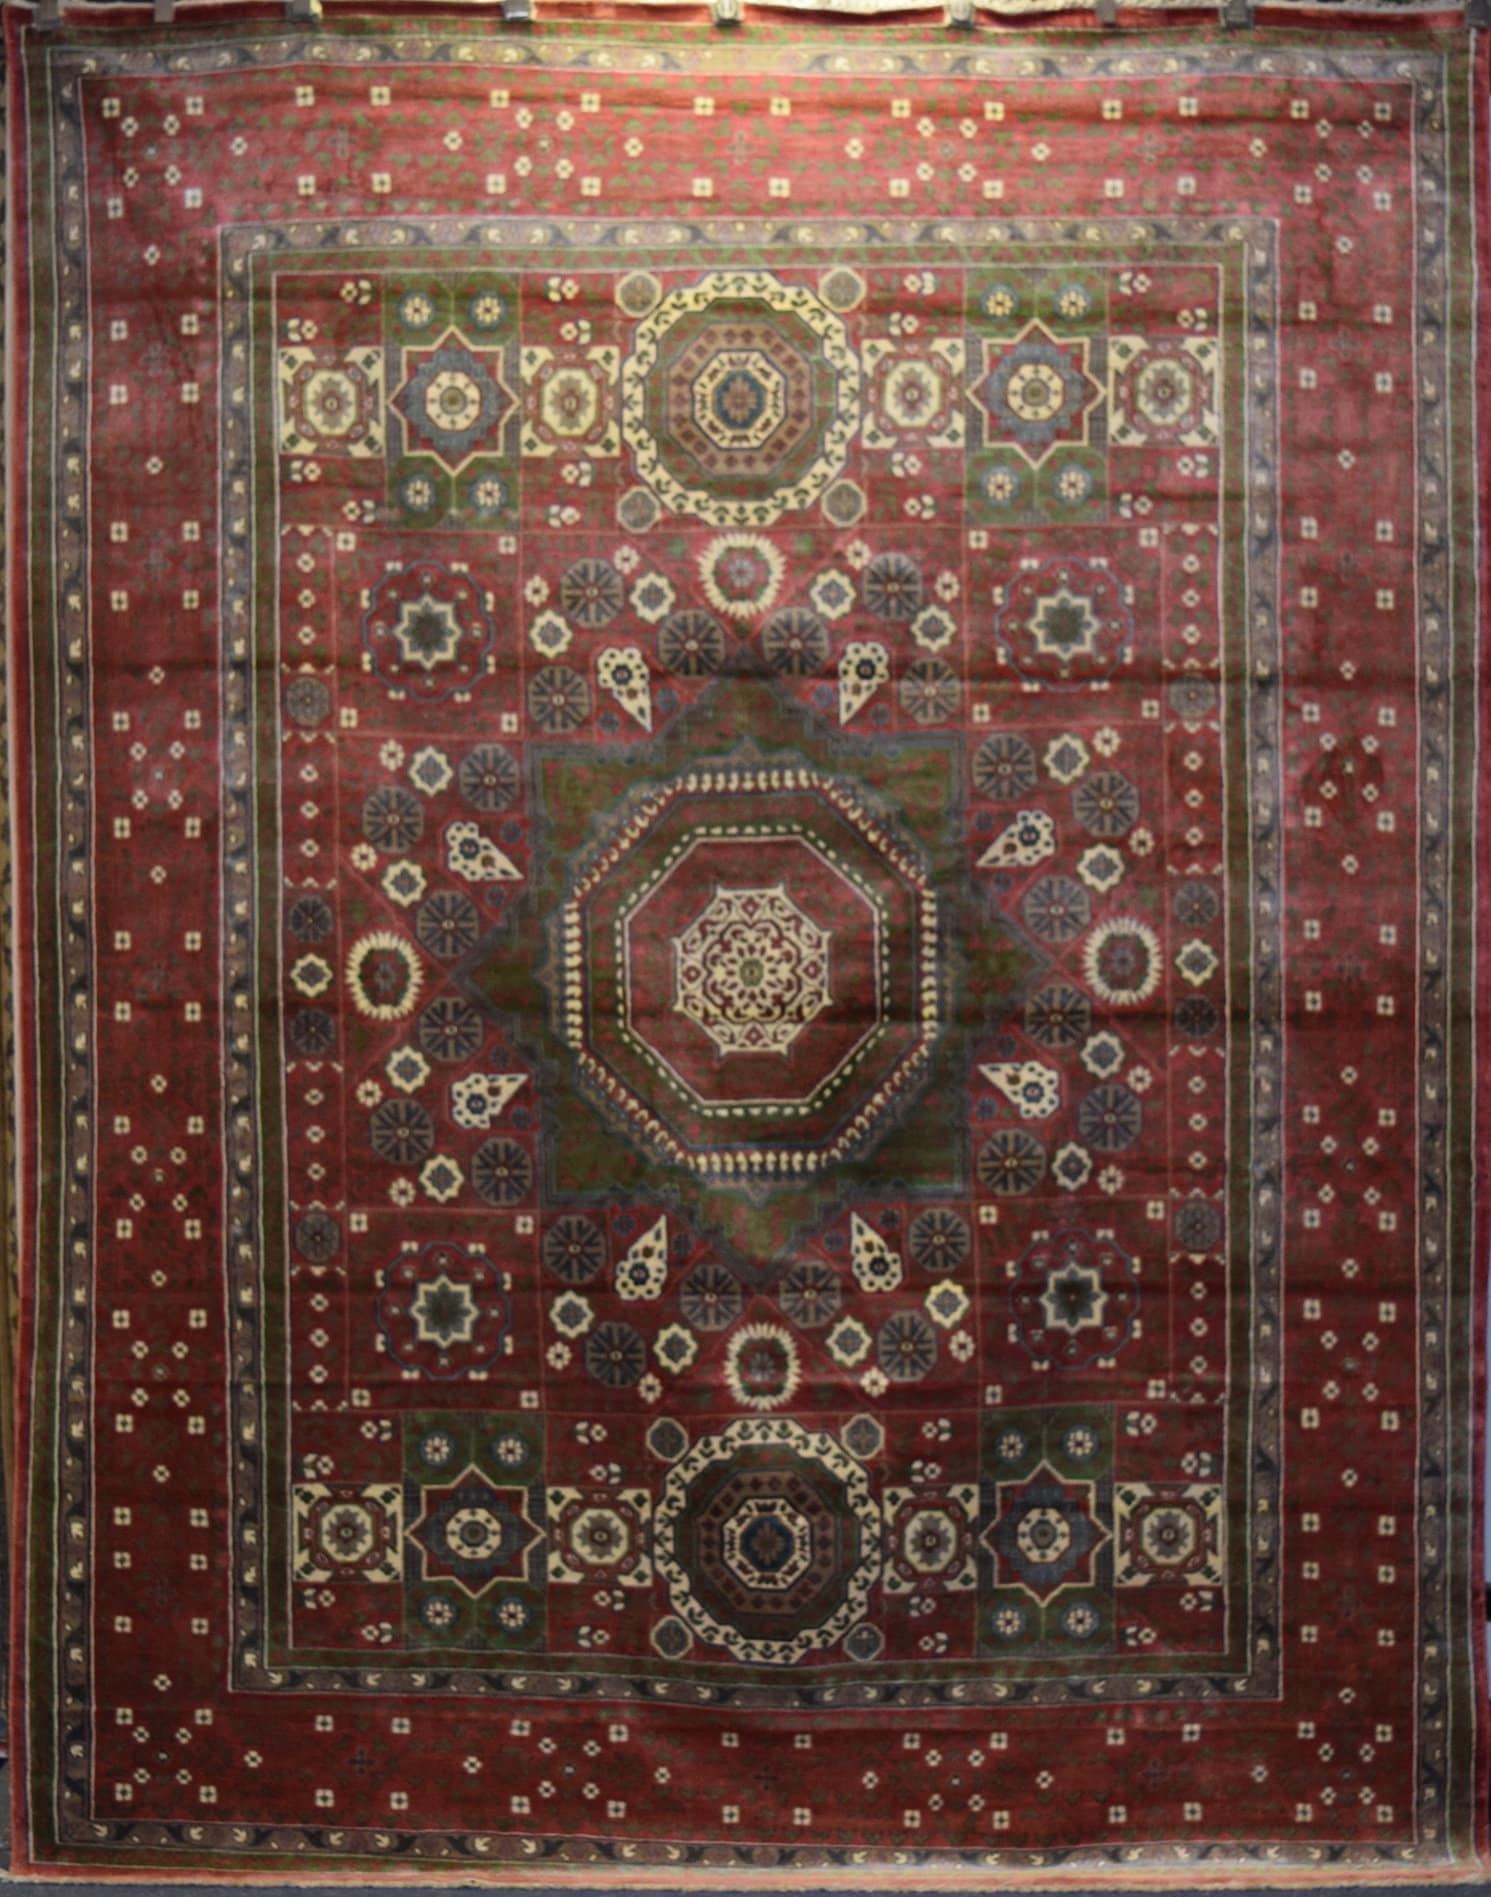 Beautiful Hand Knotted One Of The Kind Oriental Rugs Jammu Kashmir Size 8 0 X 10 0 Ft